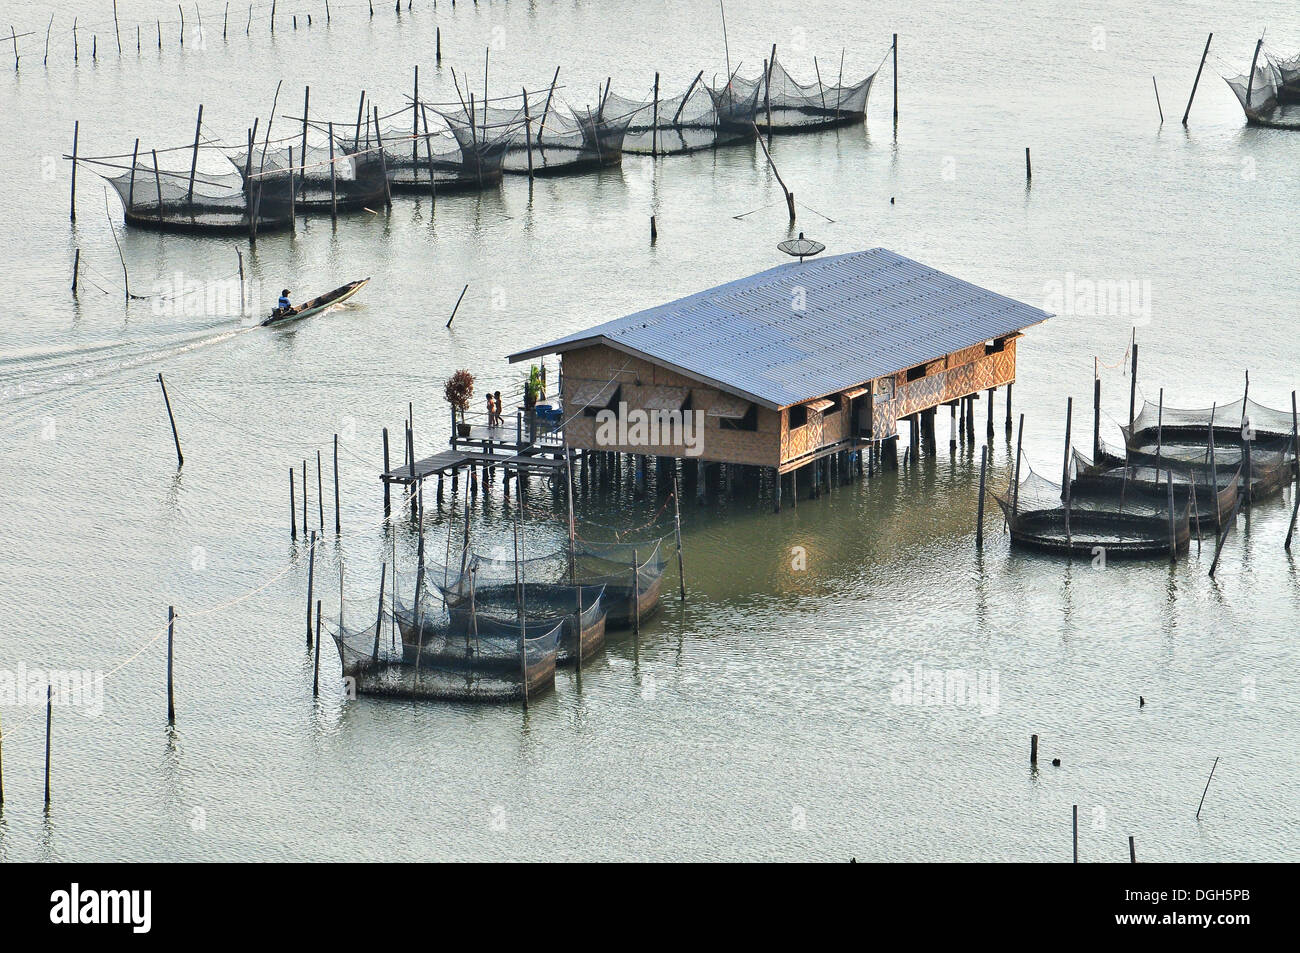 Fish Farming In Thailand Stock Photos & Fish Farming In Thailand ...